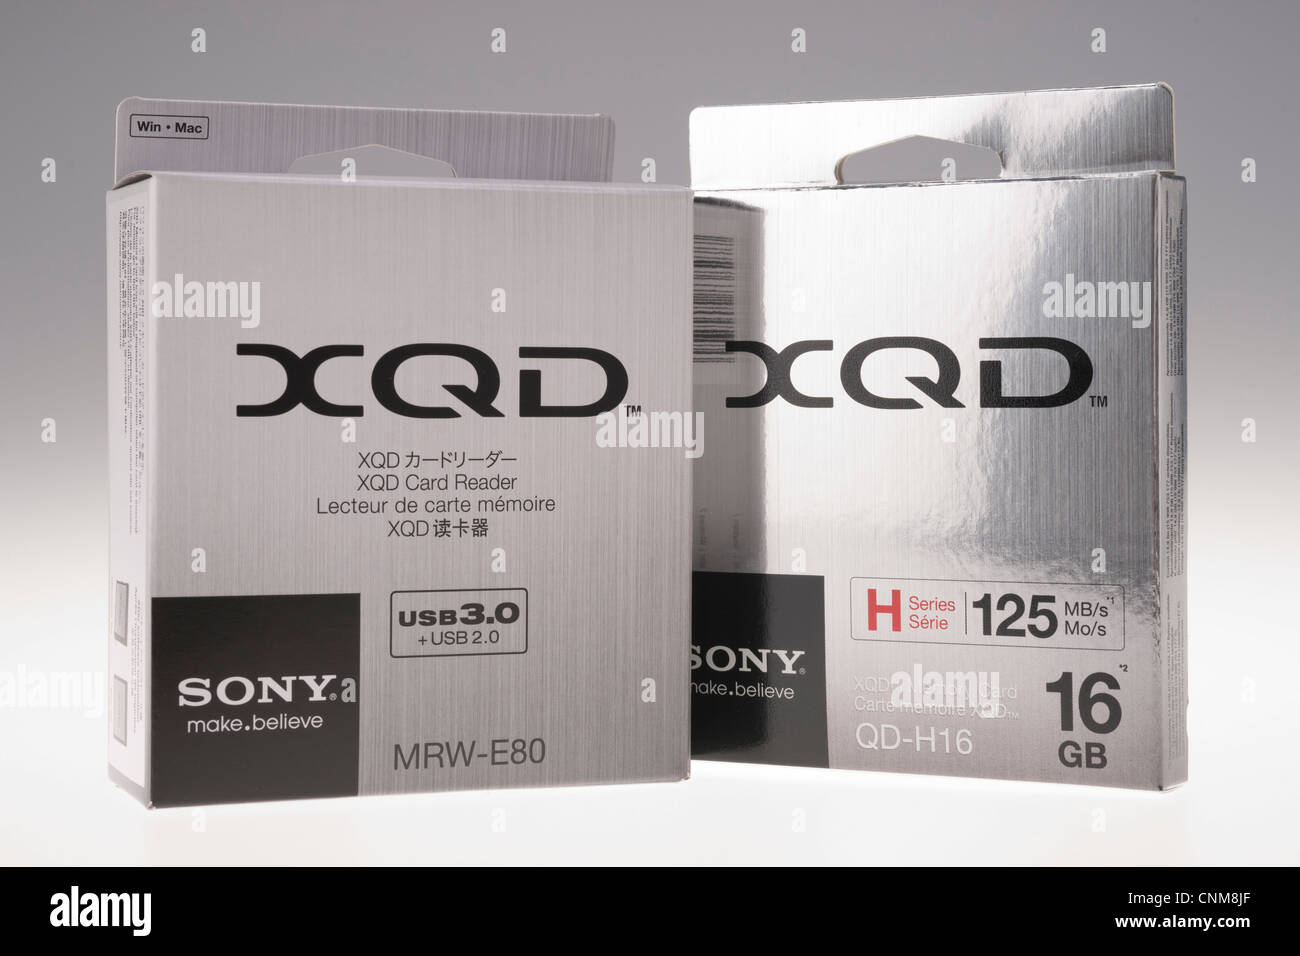 Photographic equipment - Sony XQD memory card. Packaging, card and reader. - Stock Image